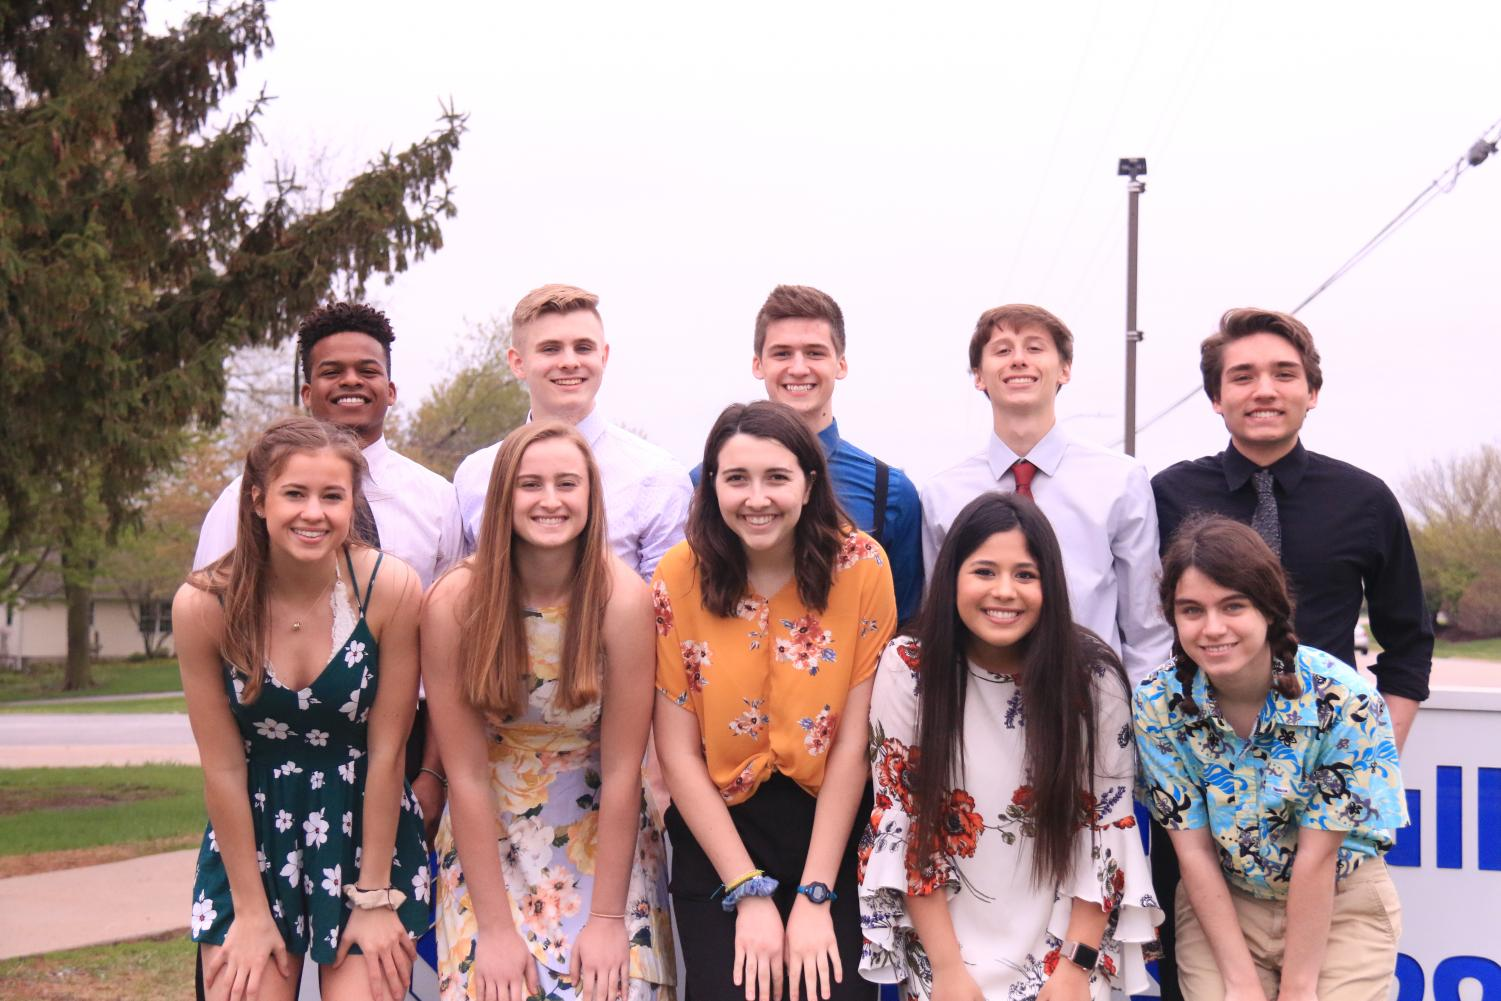 The 2019 Prom Court poses for a photo in front of the Pleasant Valley High School sign.